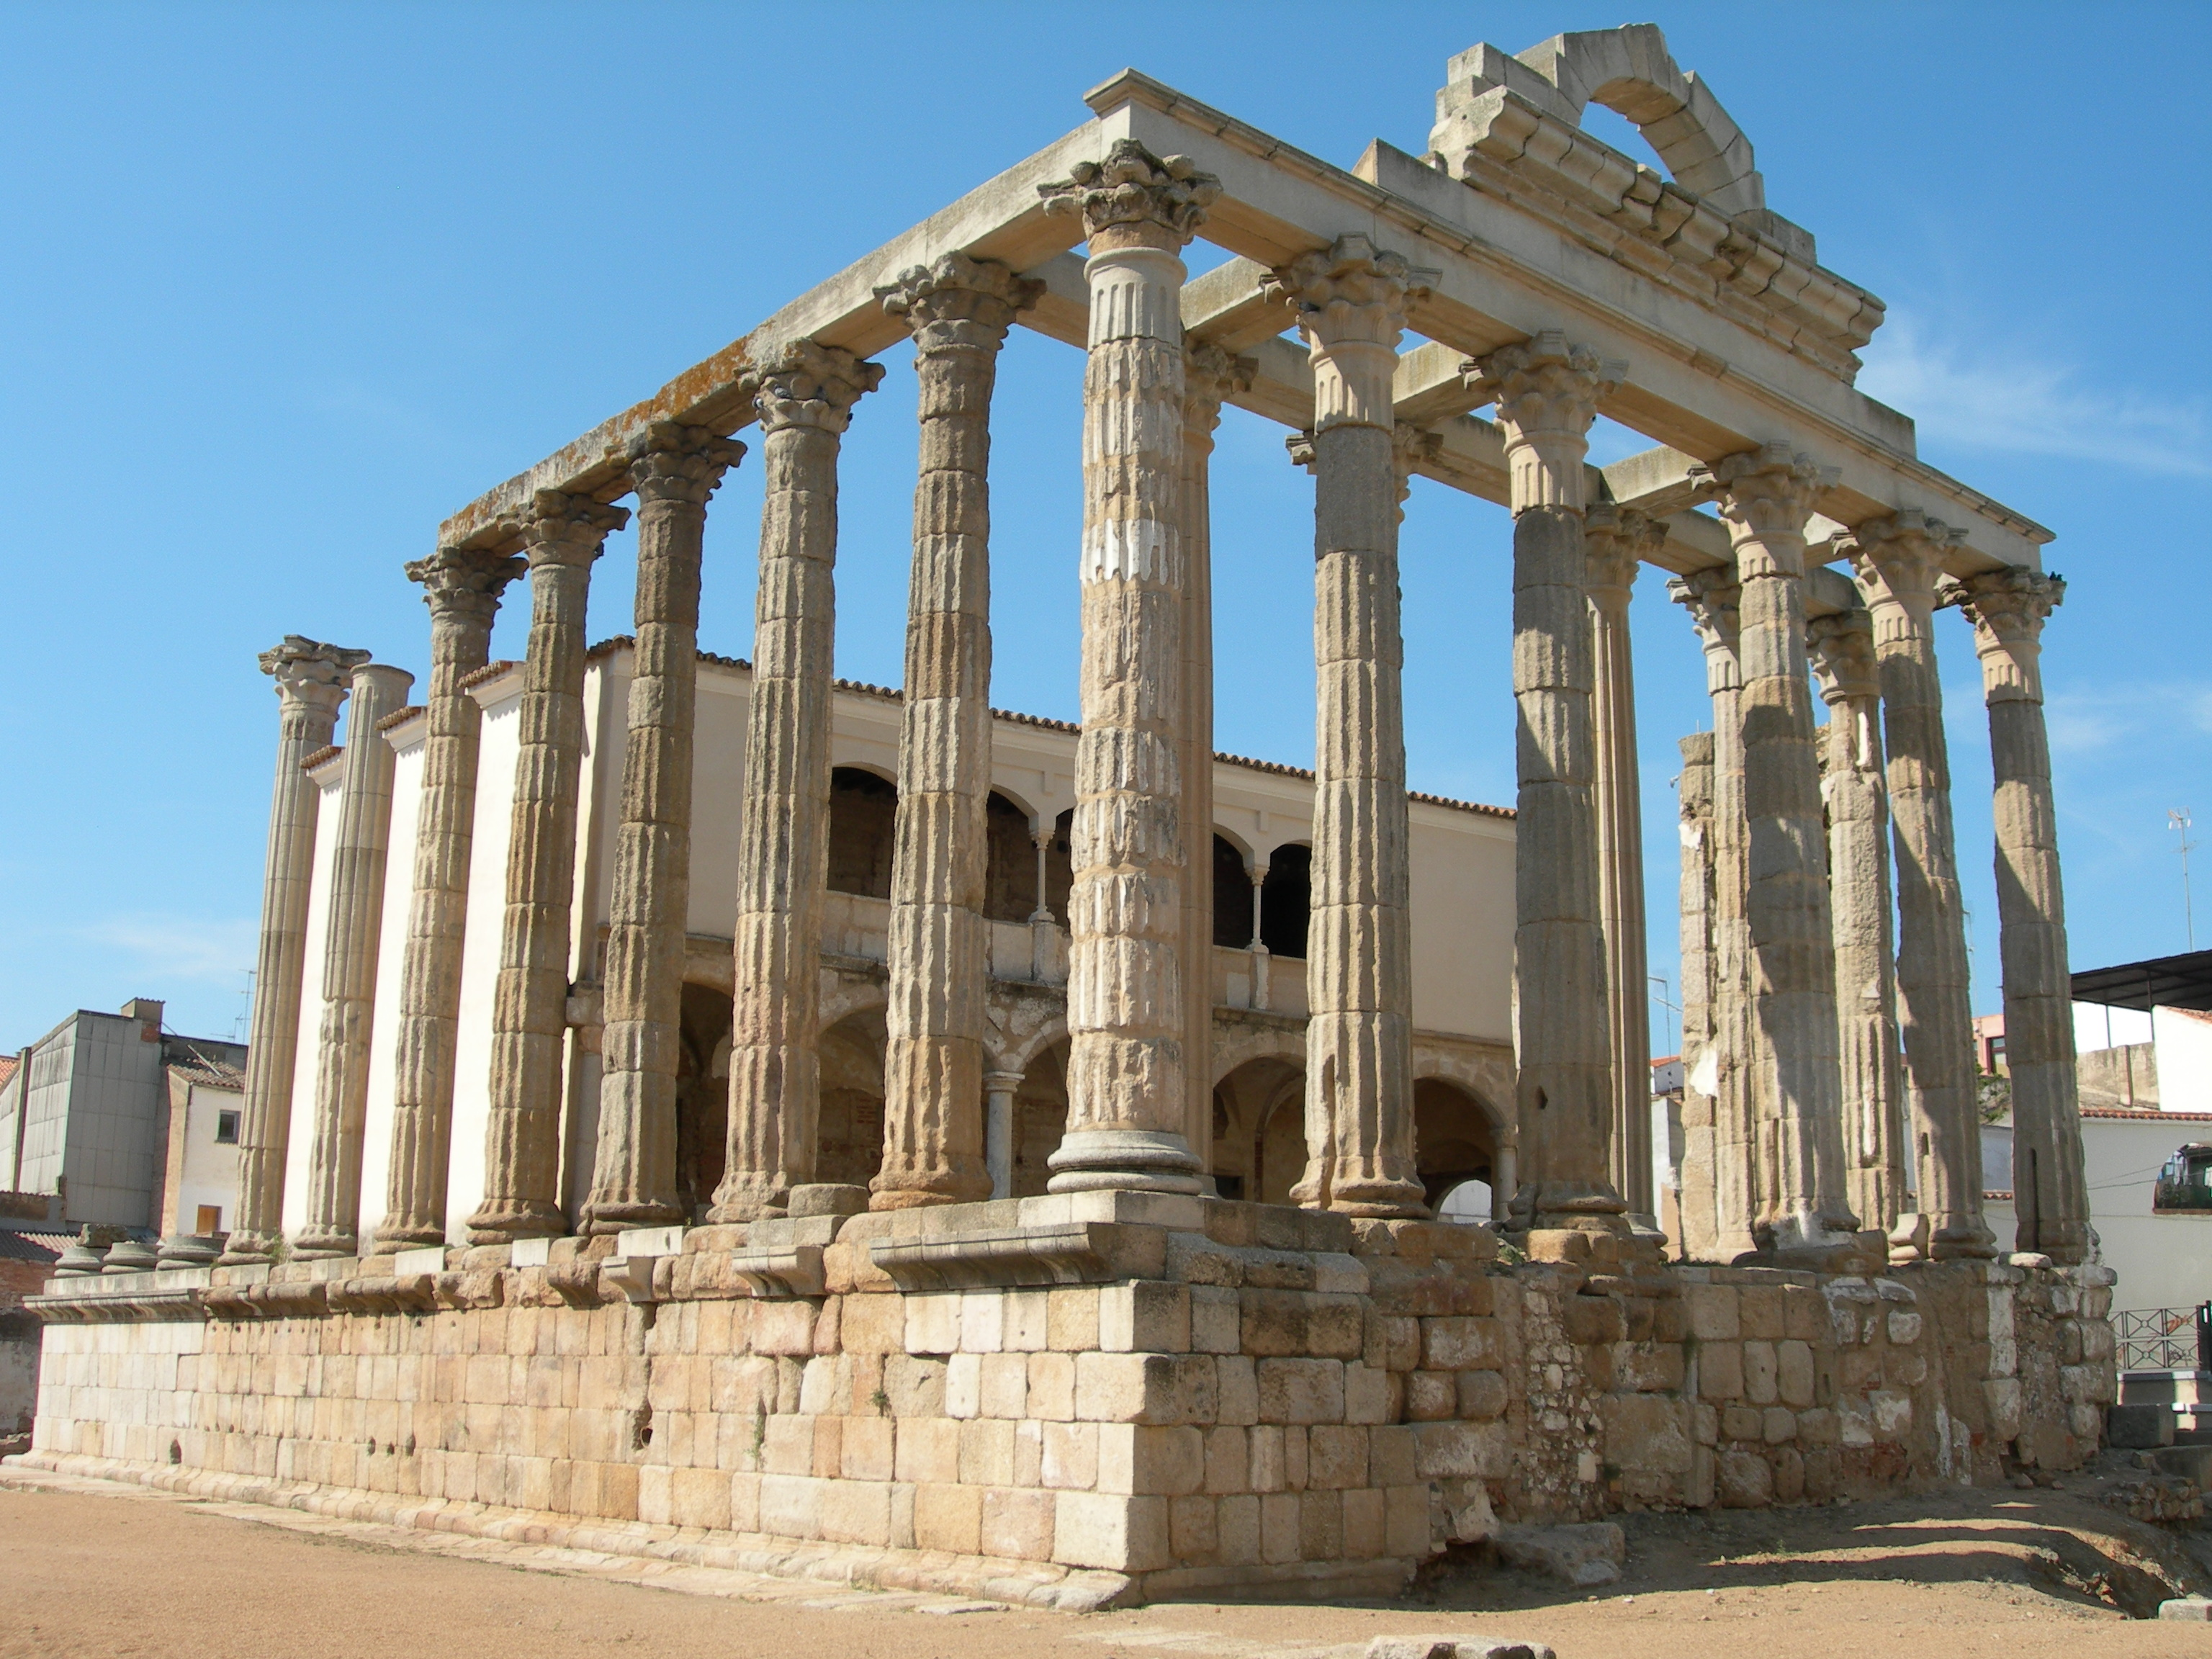 FIGURE 4. The Roman Temple of Diana at Mérida, Spain. Photo by Byron Hamann.